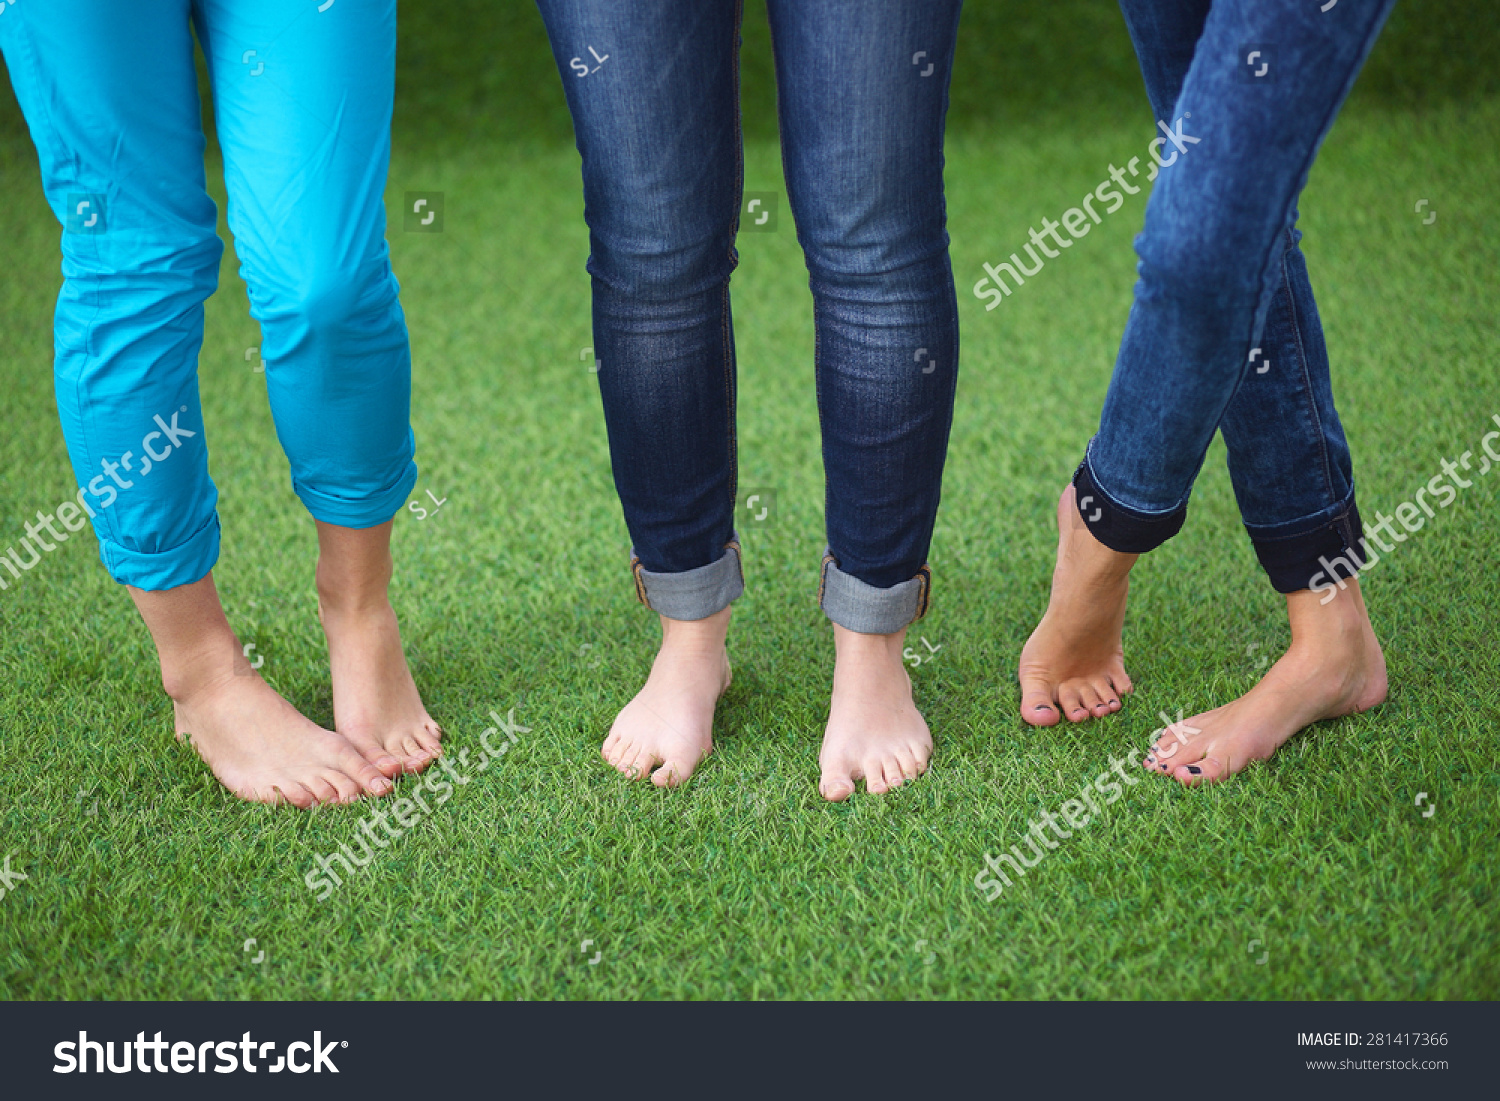 three women naked feet standing grass stock photo 281417366